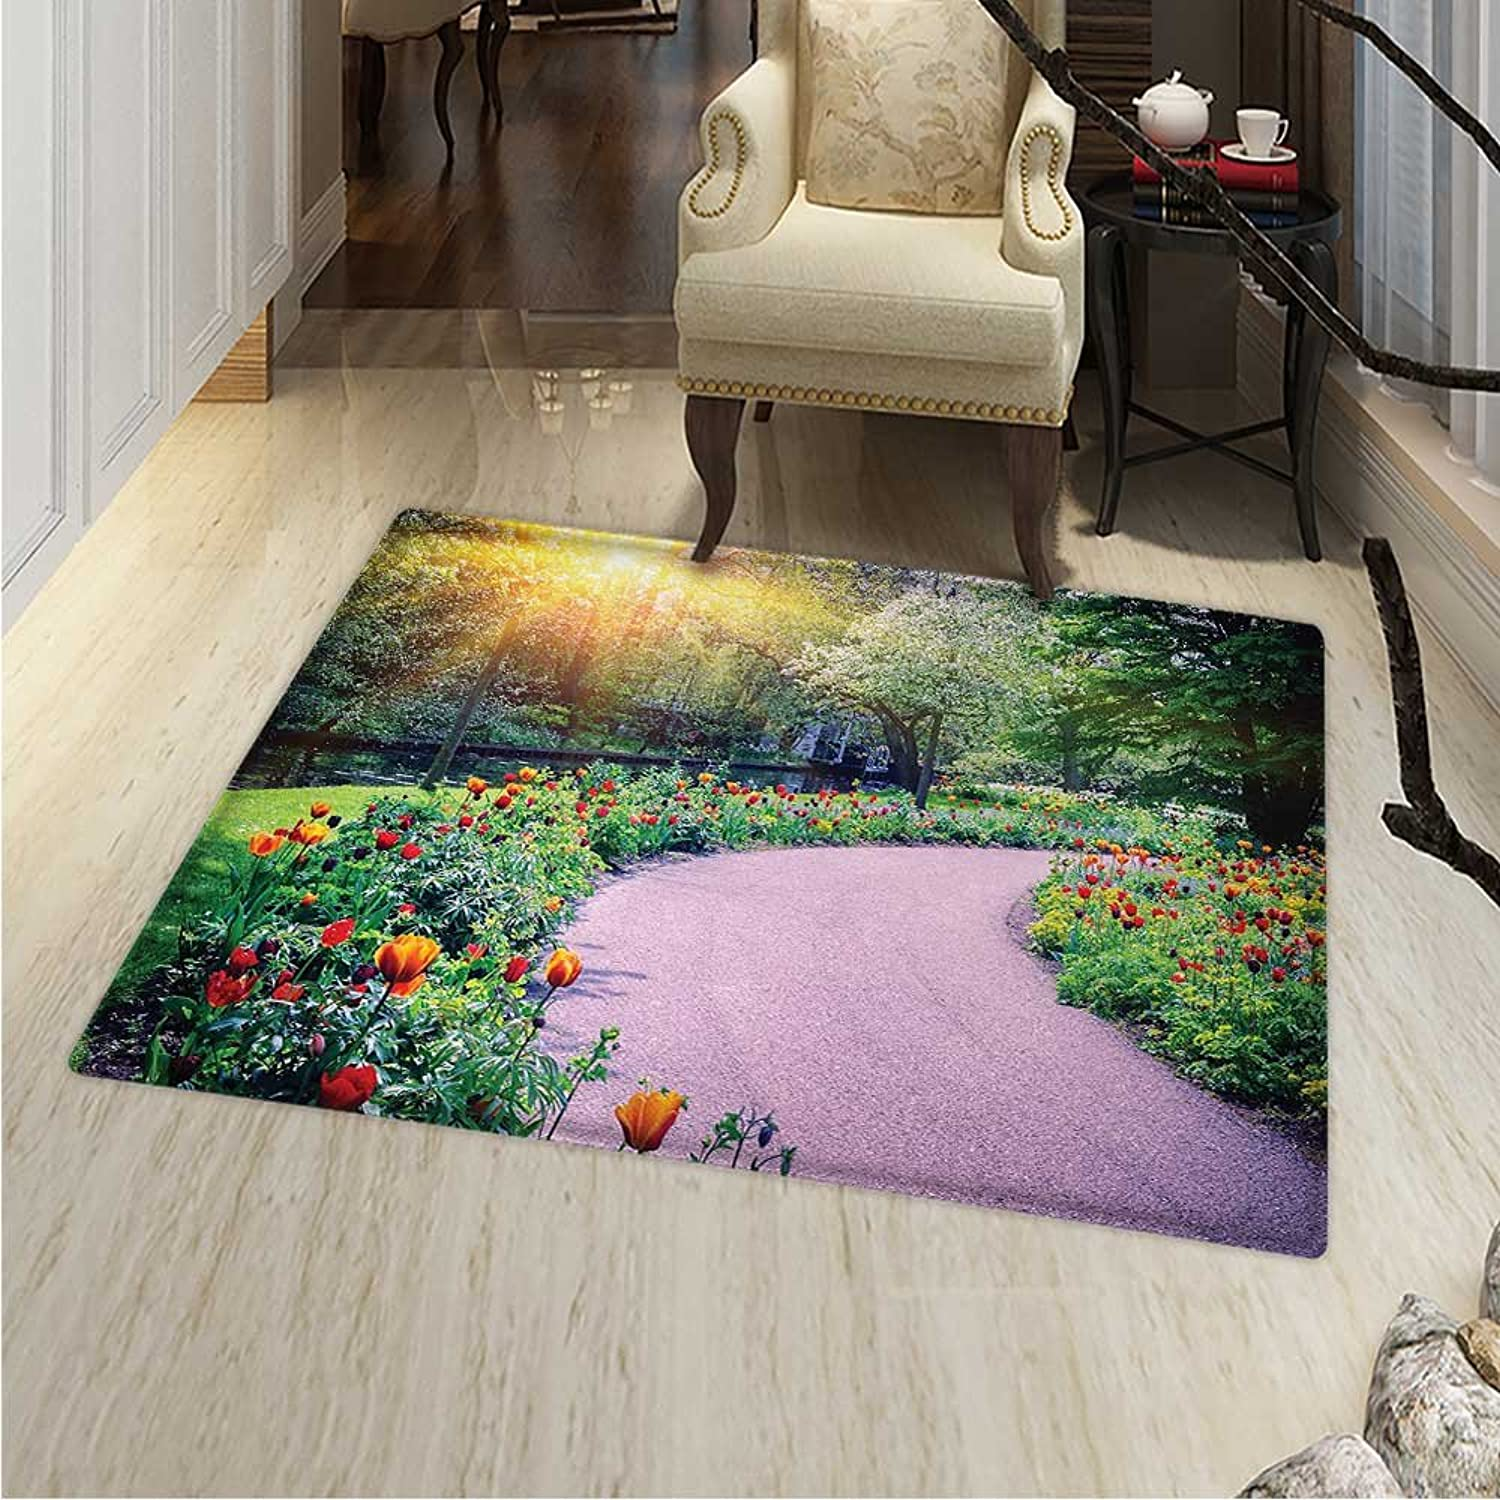 Garden Anti-Skid Area Rug Spring Landscape with colorful Tulips Keukenhof Garden in Netherlands Horticulture Soft Area Rugs 48 x60  Multicolor